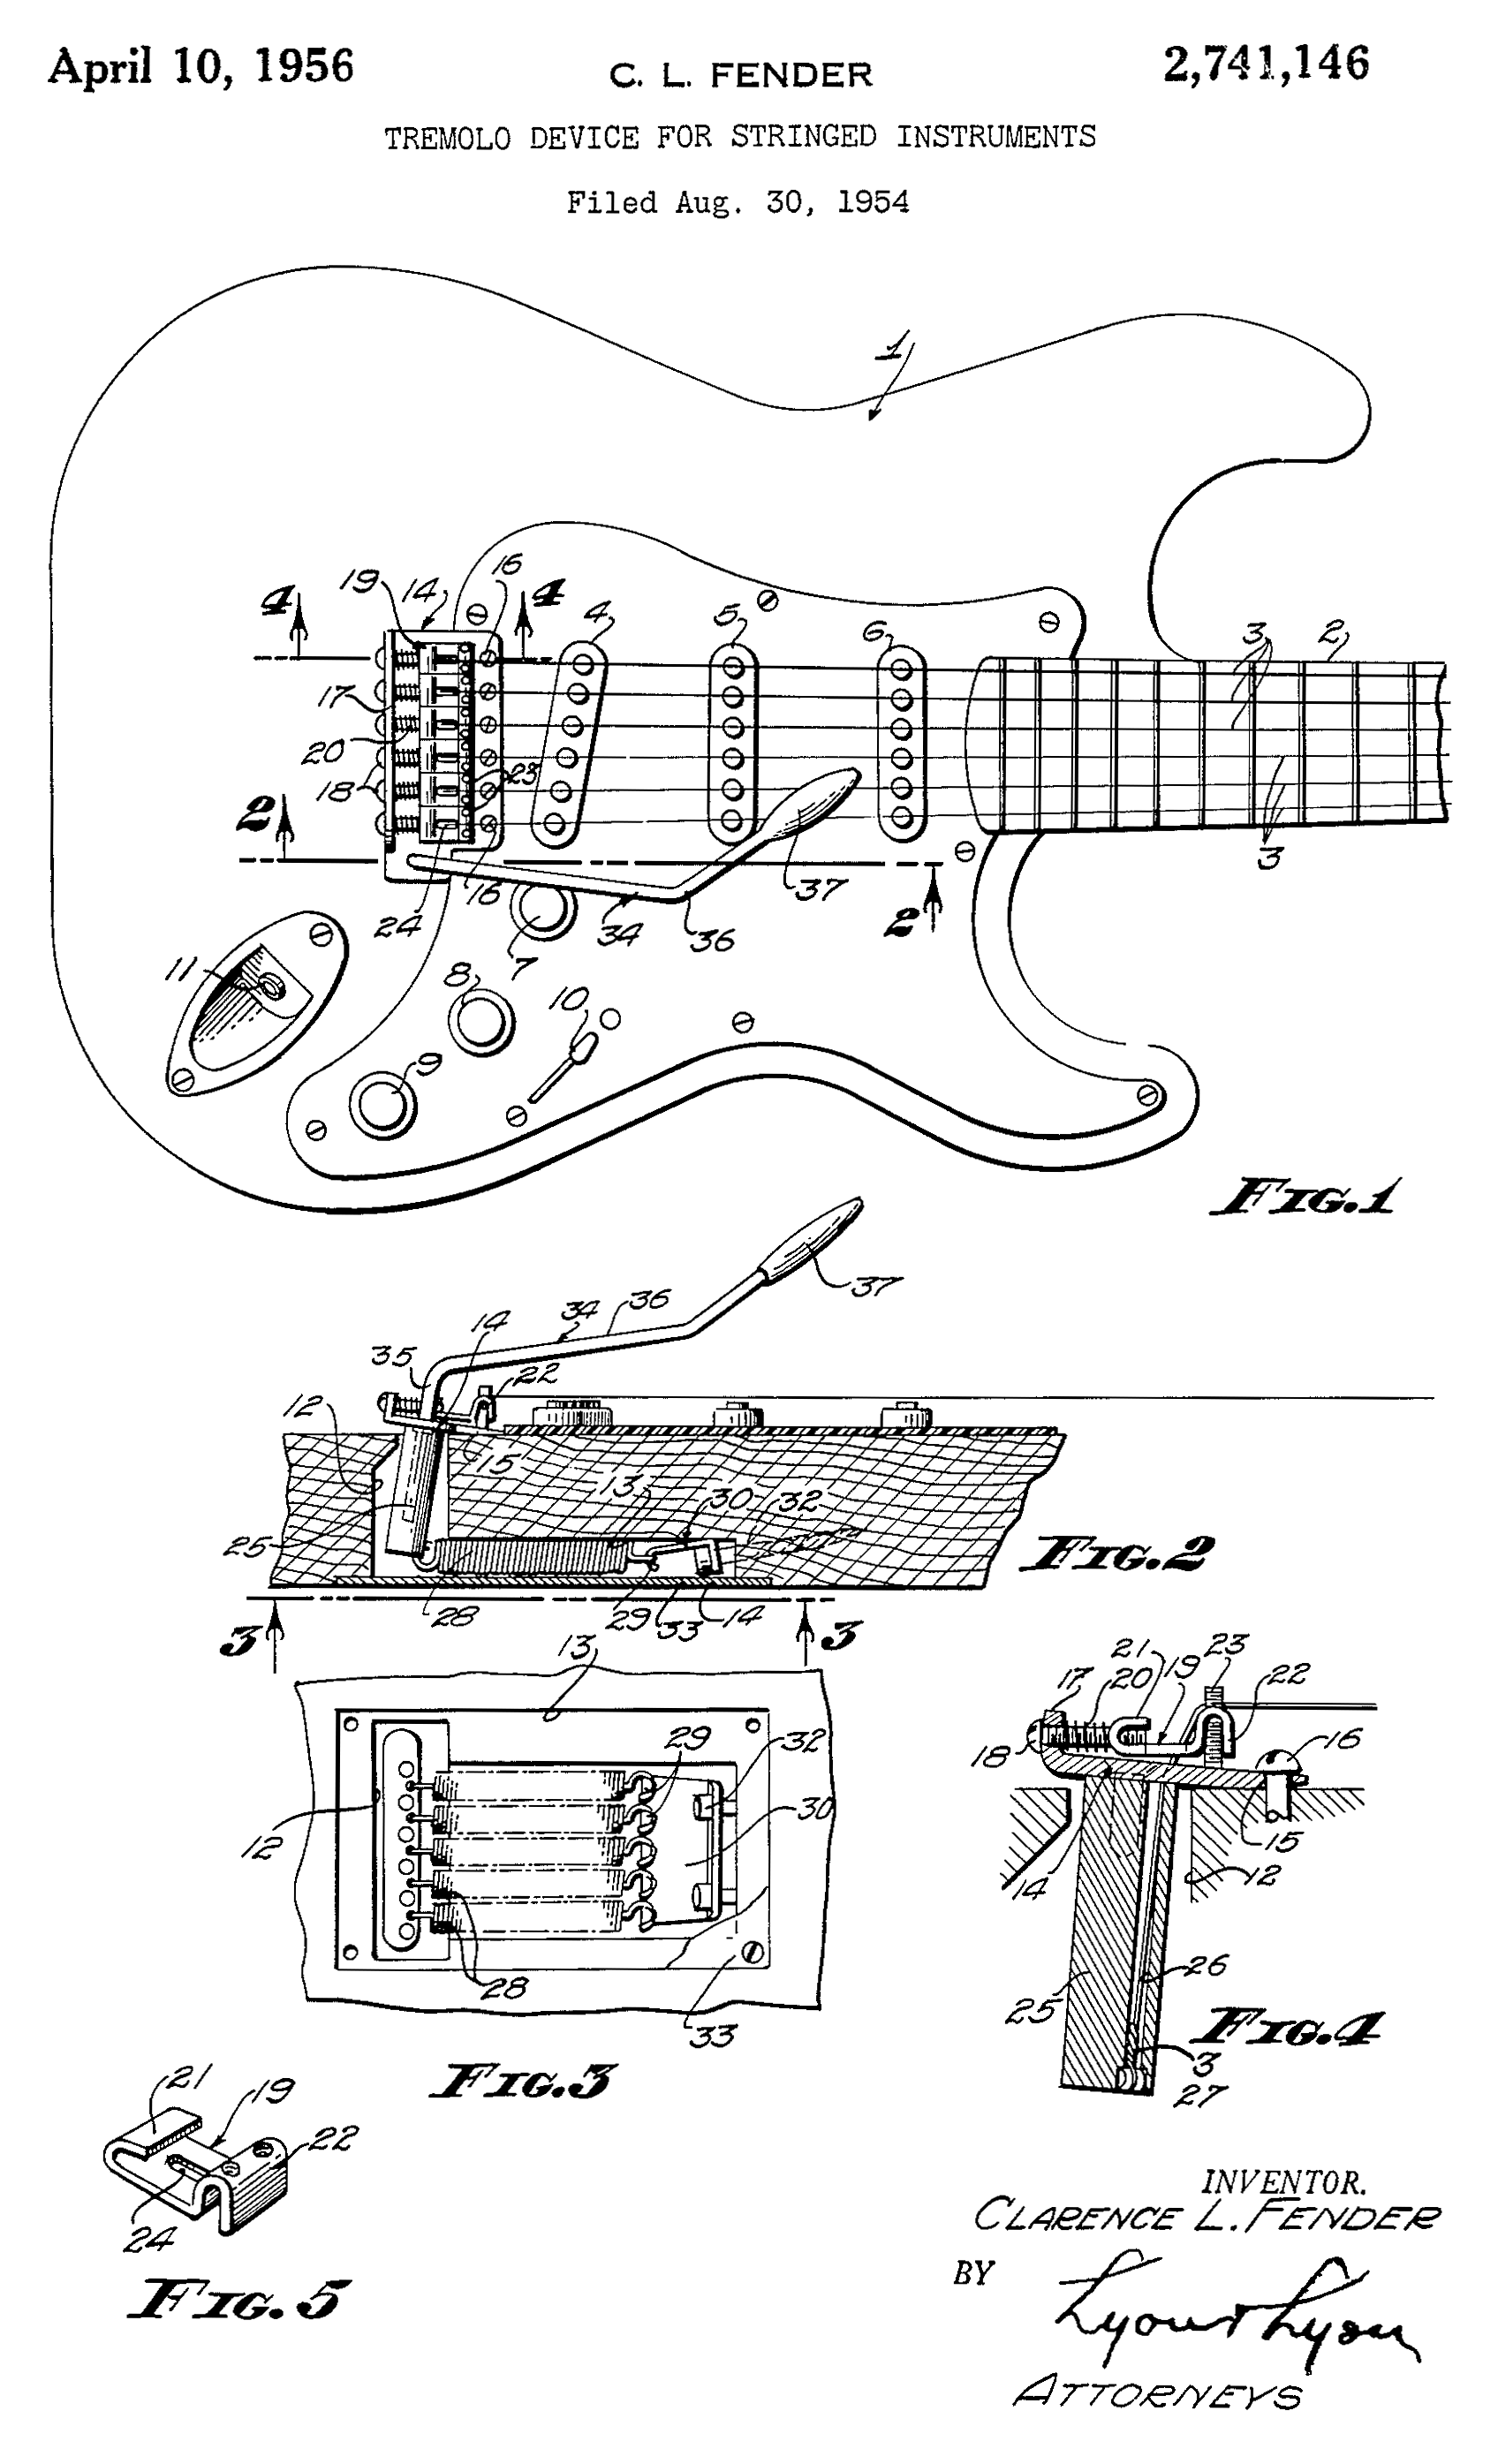 file:fendertremolopatentdiagram.png - wikimedia commons fender stratocaster tremolo wiring diagram